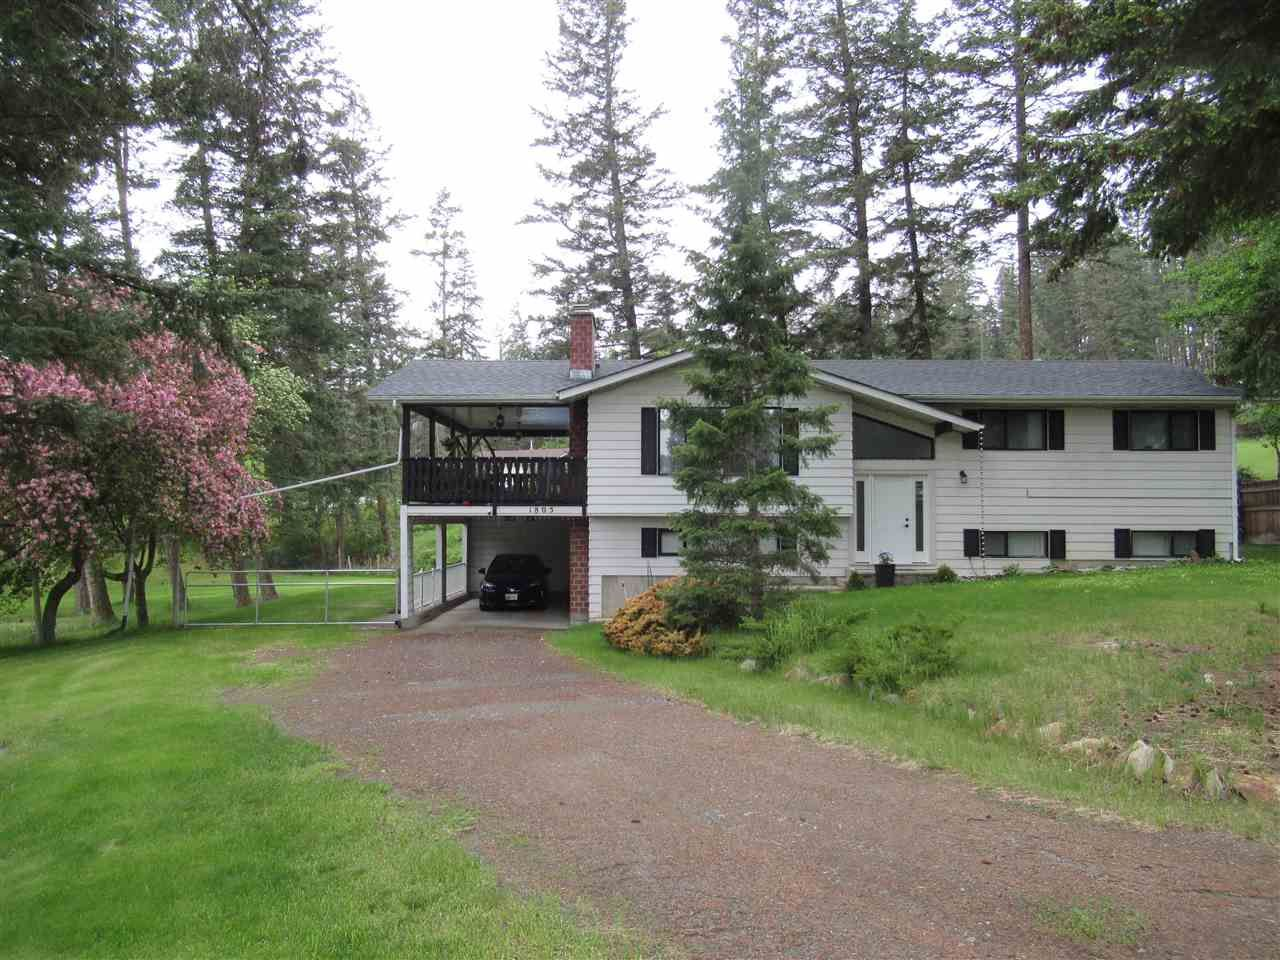 Main Photo: 1805 RANSOME Place in Williams Lake: Williams Lake - Rural North House for sale (Williams Lake (Zone 27))  : MLS®# R2464009